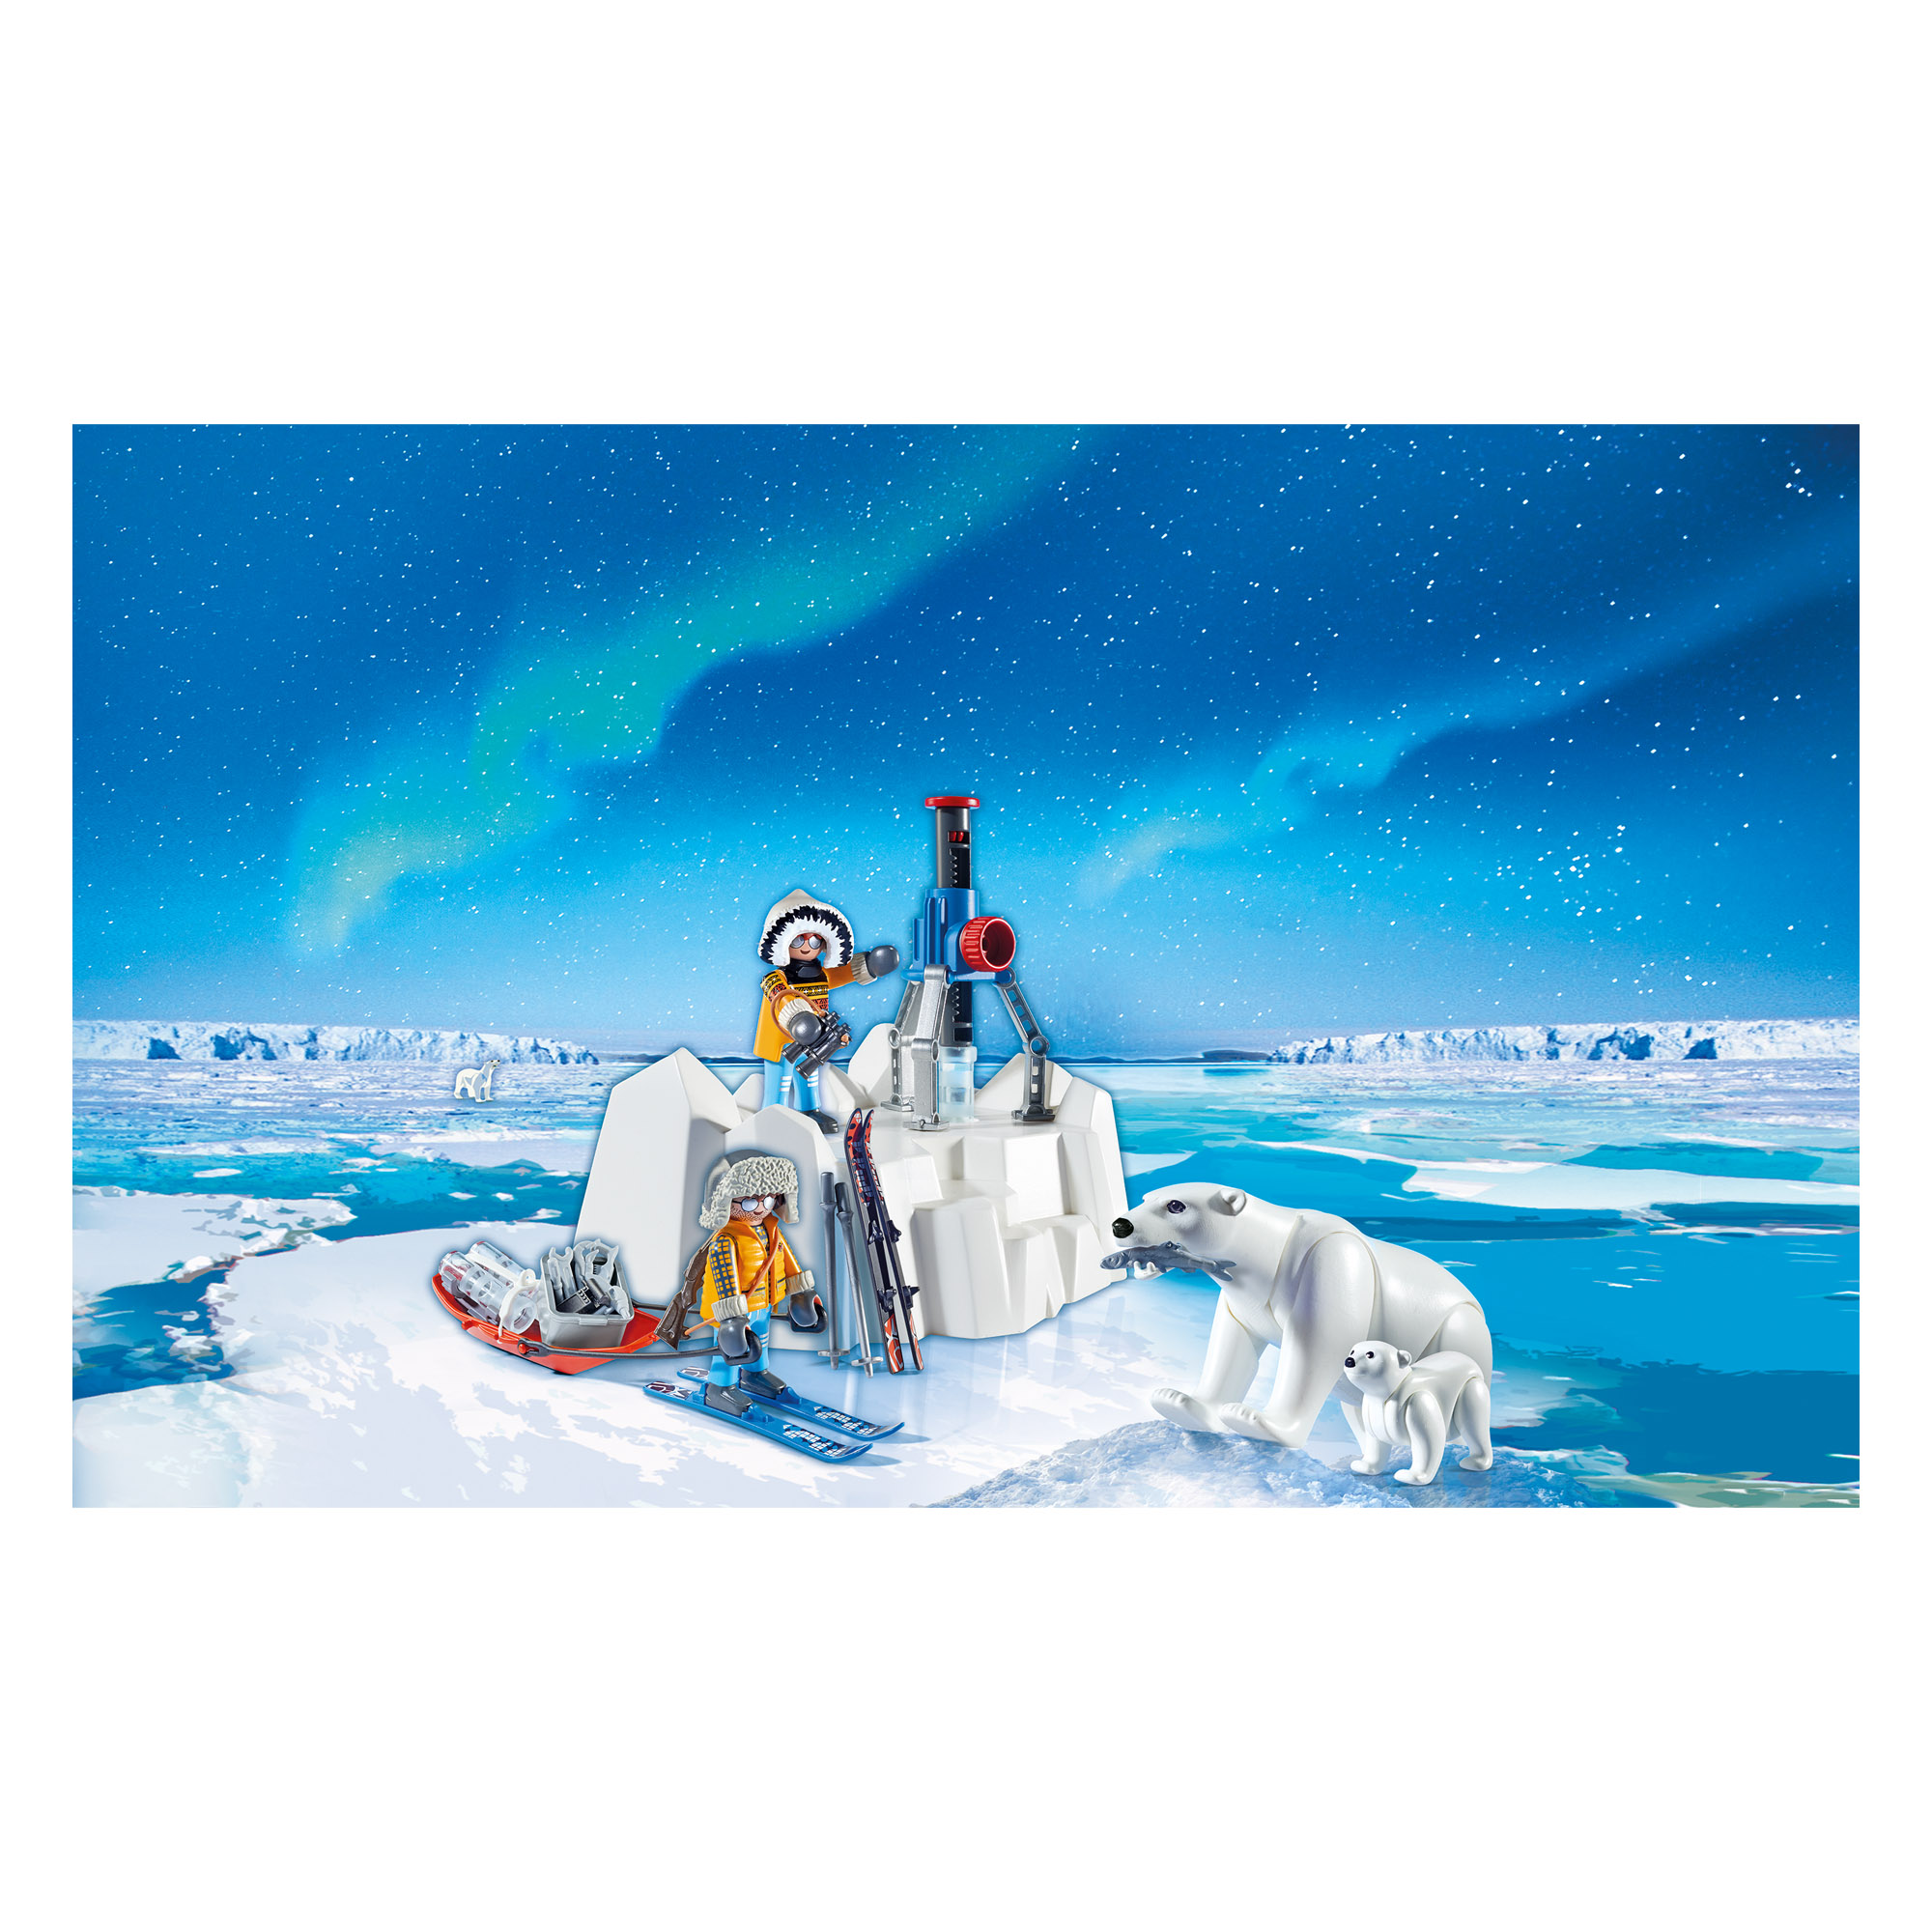 Playmobil Arctic Explorers with Polar Bears play set